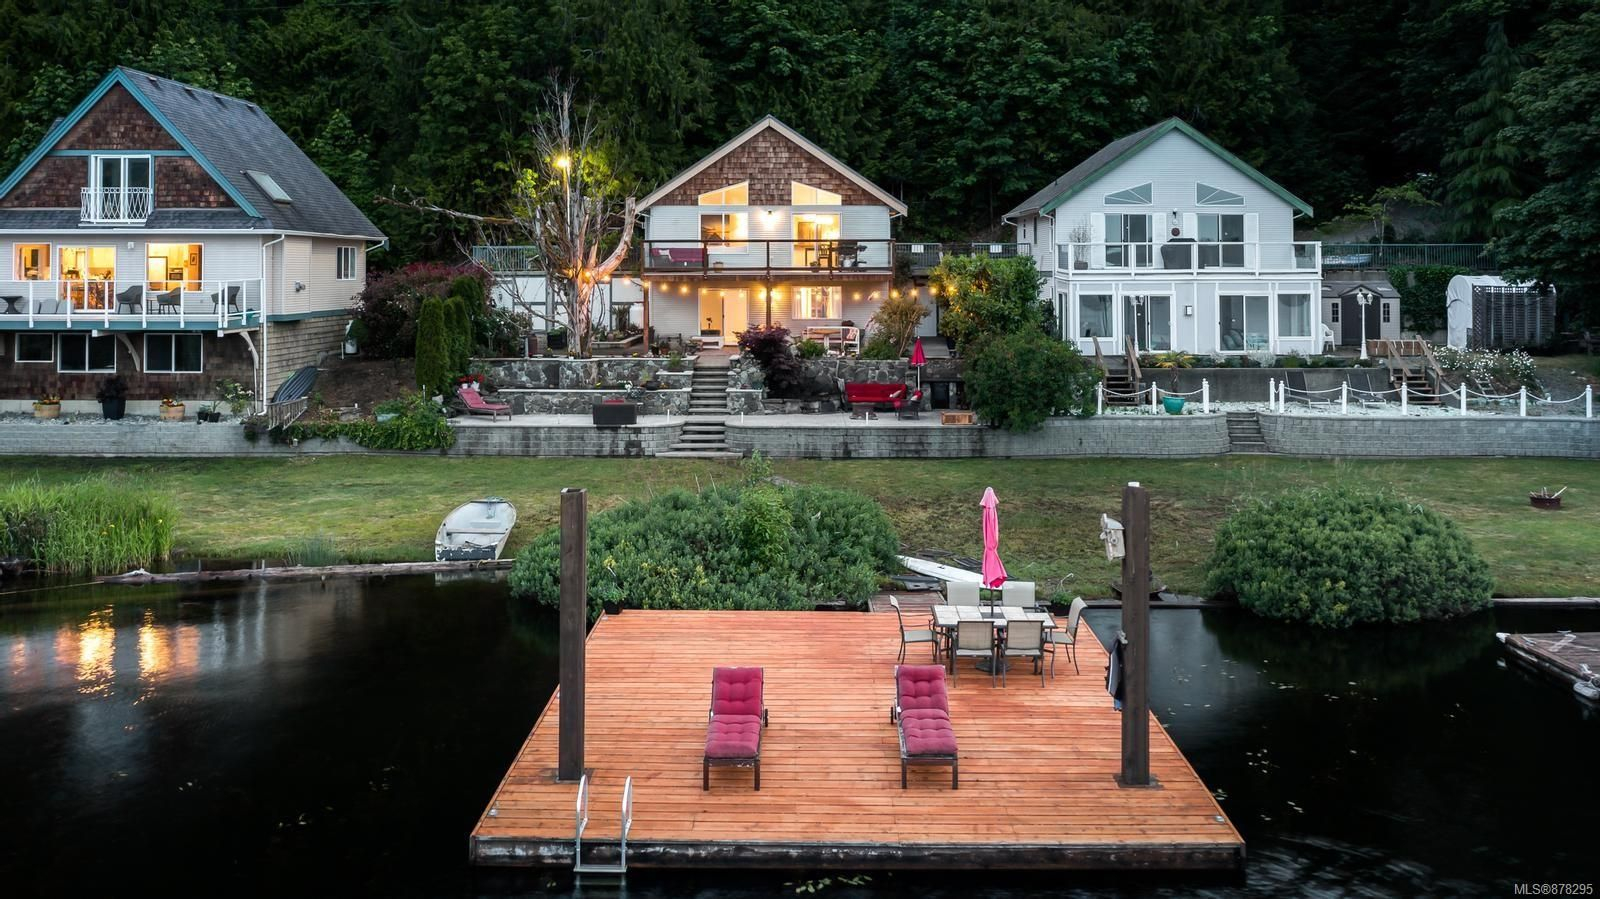 Main Photo: 2415 West Shawnigan Lake Rd in : ML Shawnigan House for sale (Malahat & Area)  : MLS®# 878295